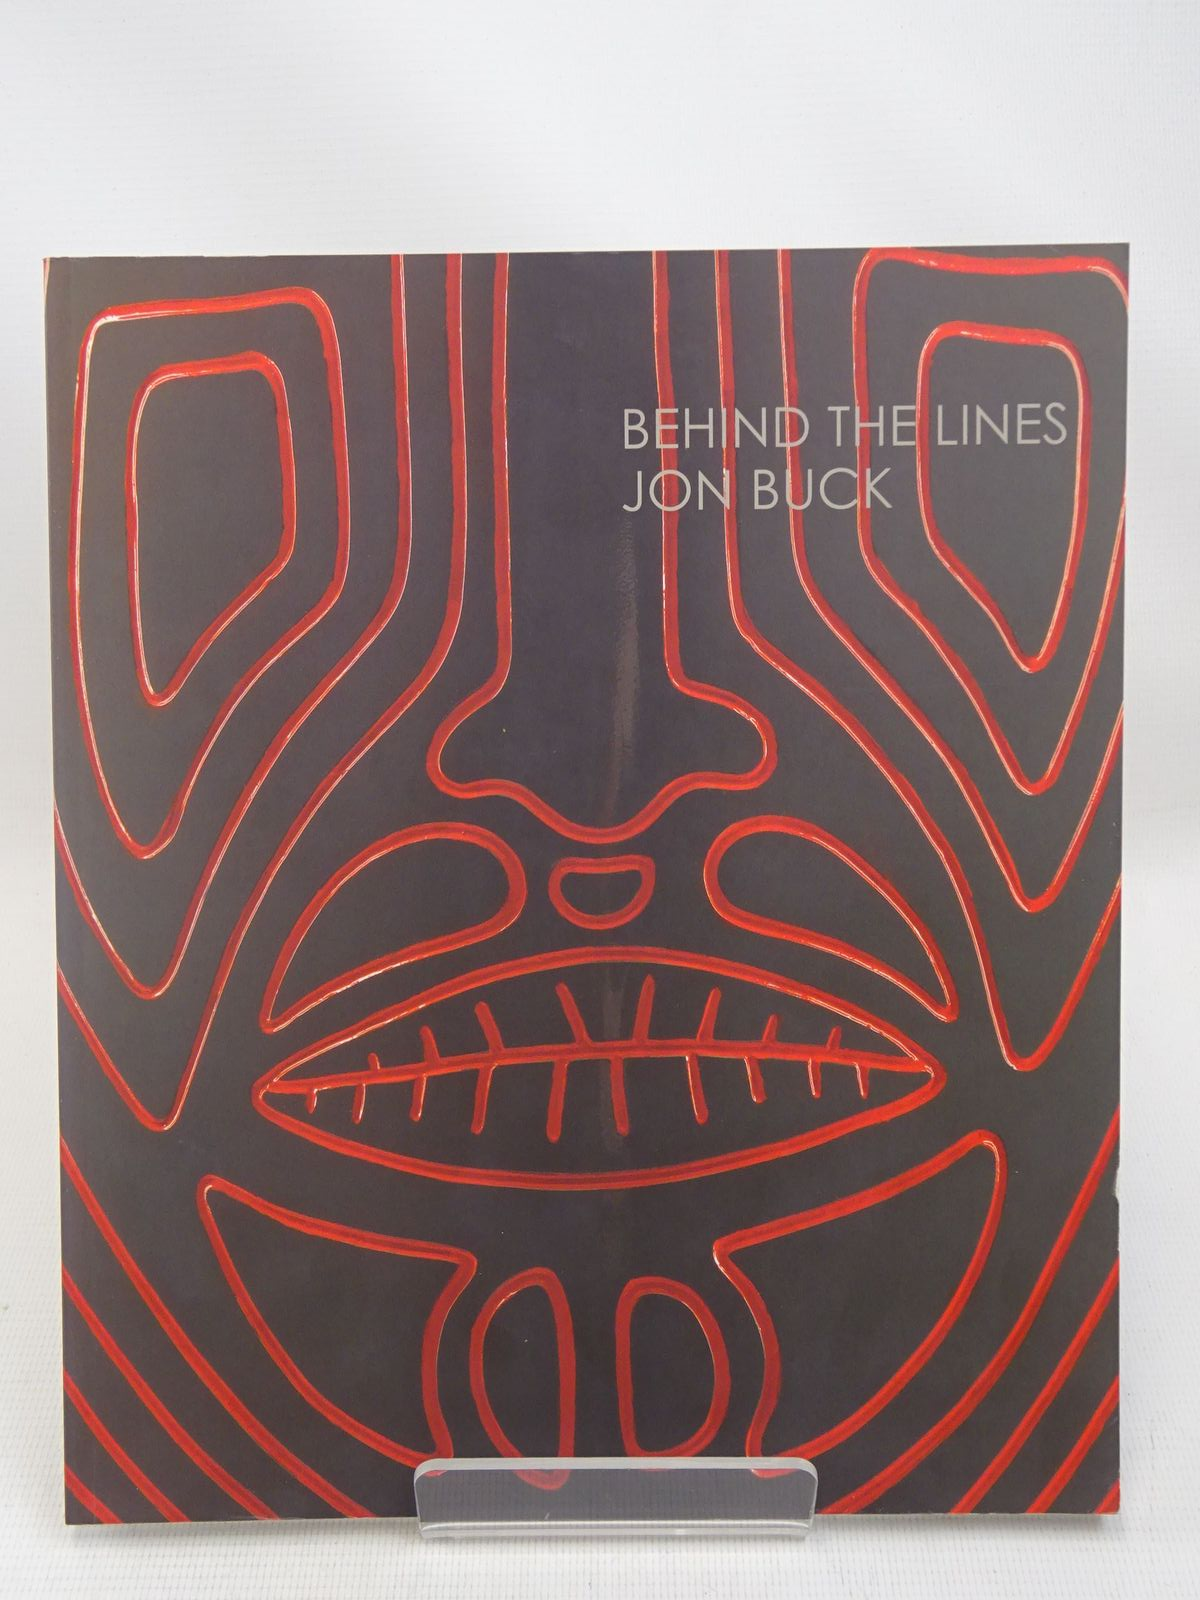 Photo of BEHIND THE LINES: JON BUCK written by Bielecka, Polly illustrated by Buck, Jon published by Pangolin London (STOCK CODE: 1816463)  for sale by Stella & Rose's Books